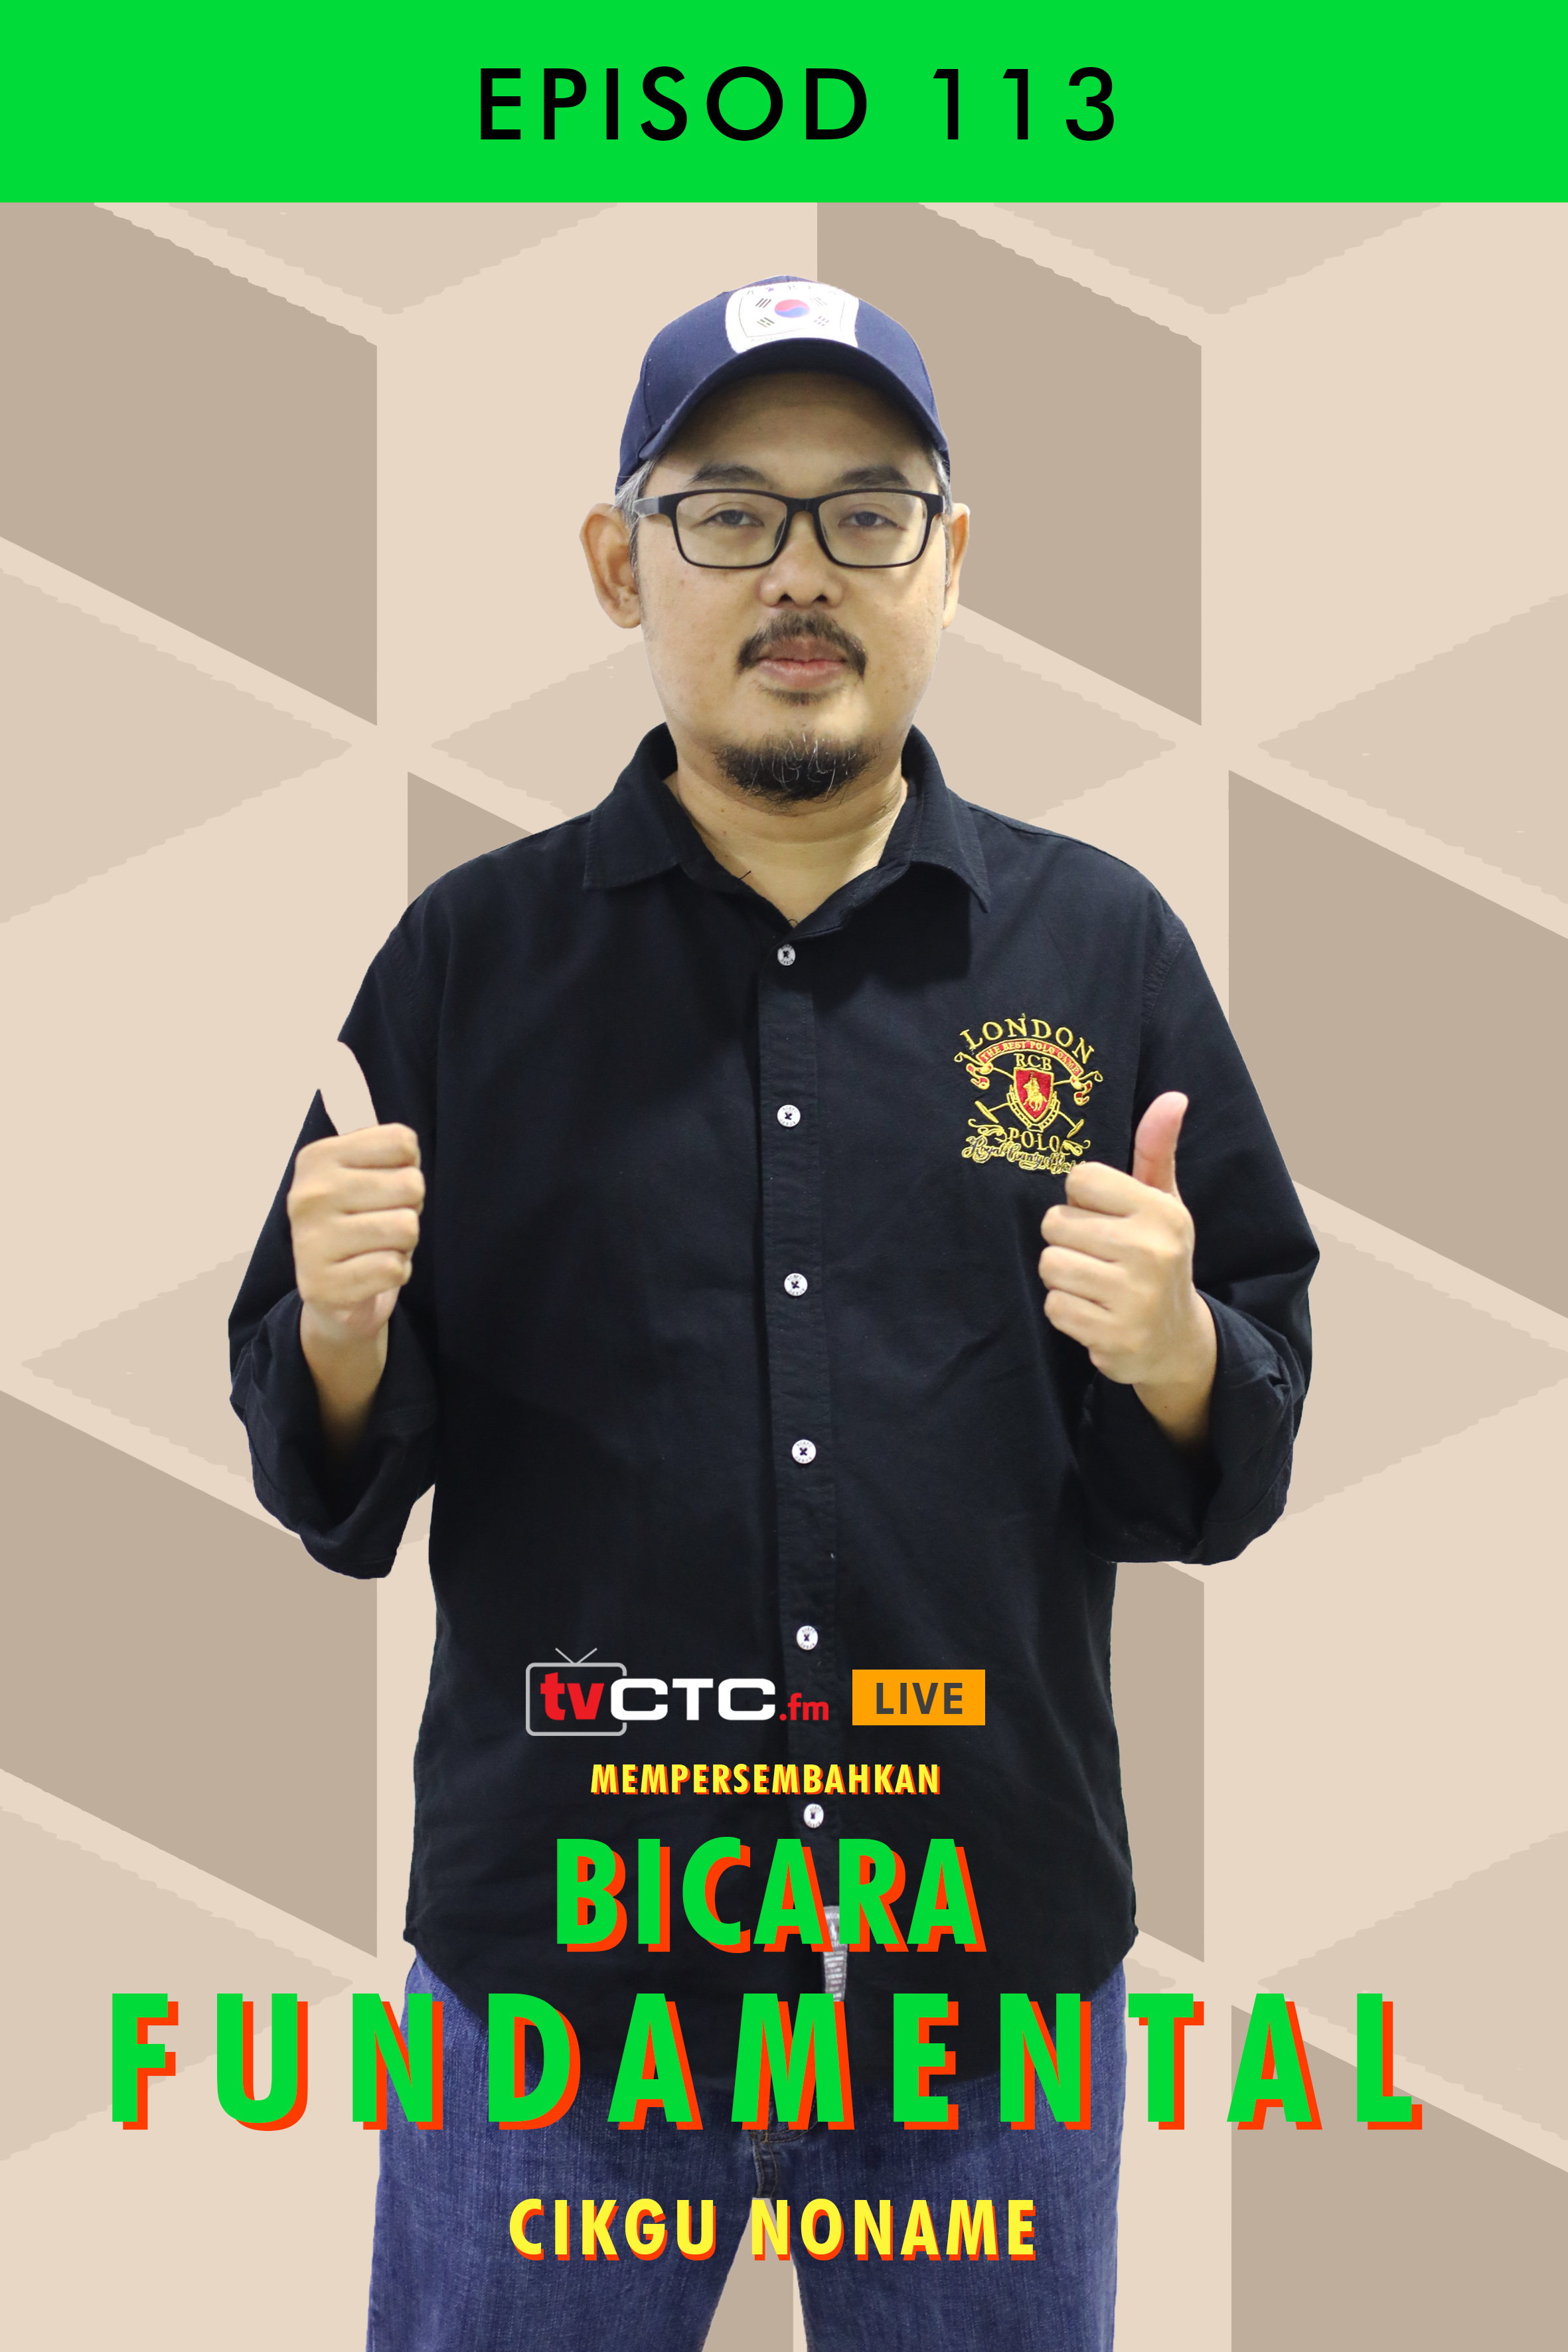 BICARA FUNDAMENTAL (Episod 113)